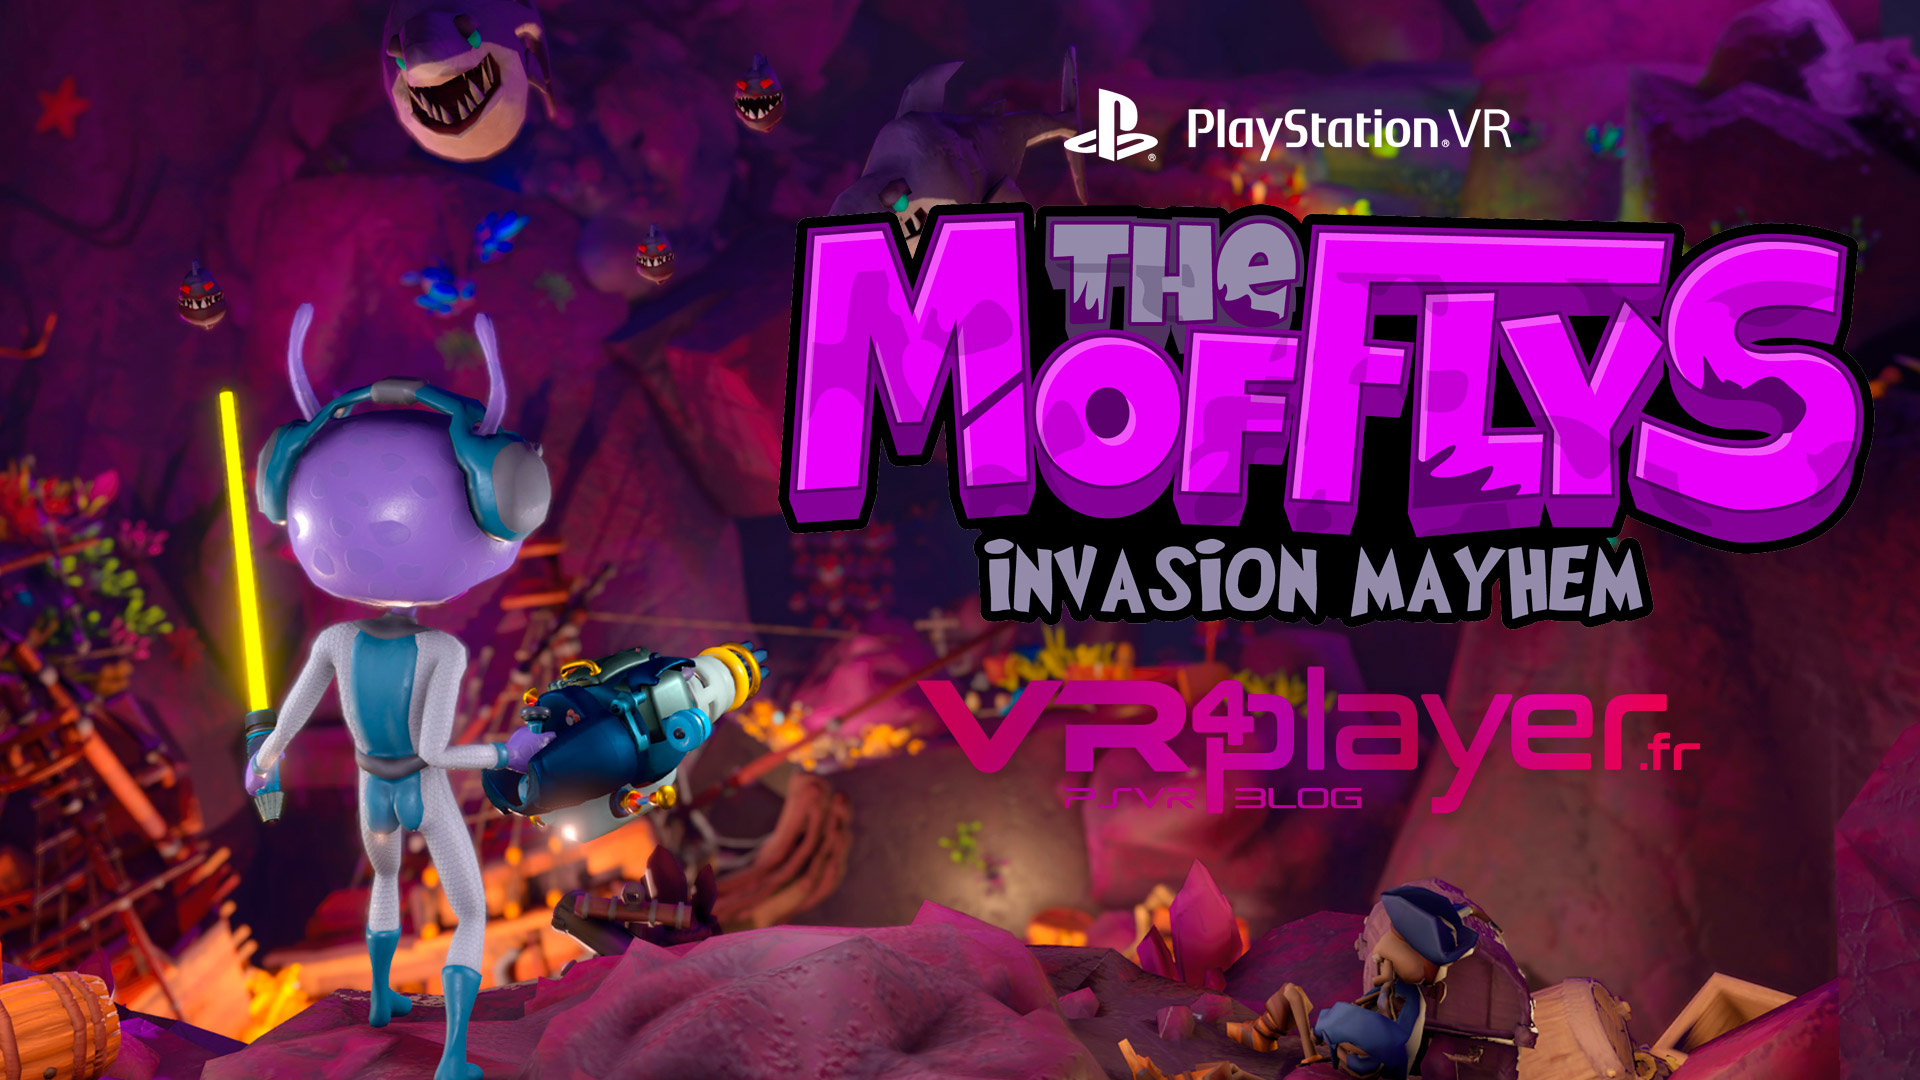 The Mofflys Invasion Mayhem PlayStation VR PSVR VR4Player